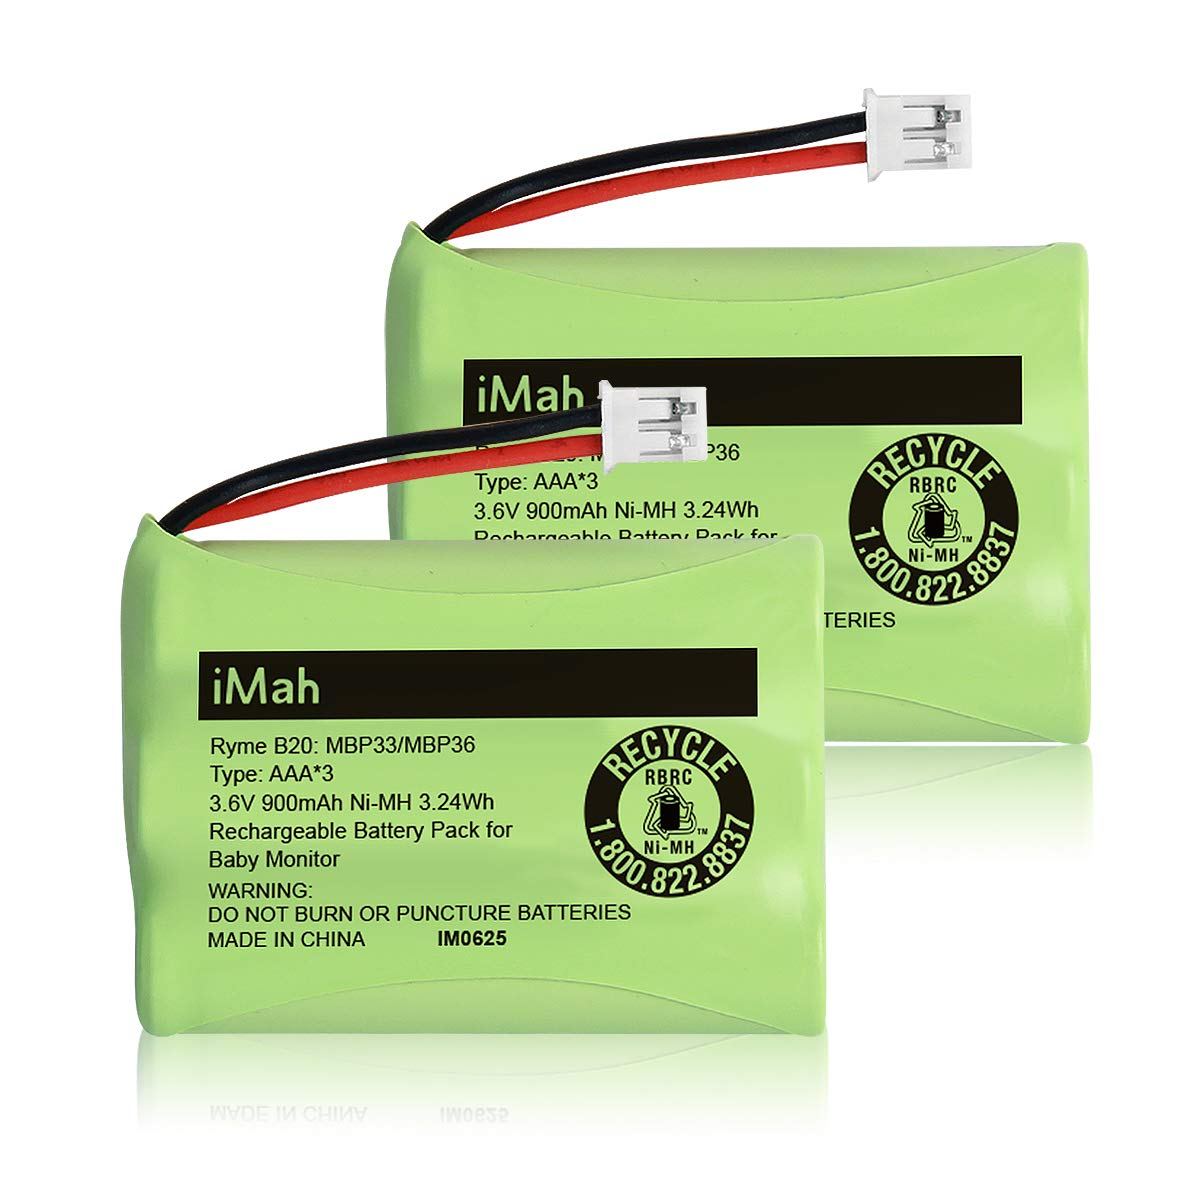 iMah Ryme B20 Battery Pack (Connector only fits Motorola MBP33/MBP36 Older 900mAh Version, Don't fit MBP33/MBP36 Newer 800mAh Version) Summer Infant 29030-10 29600-10, 2-Pack